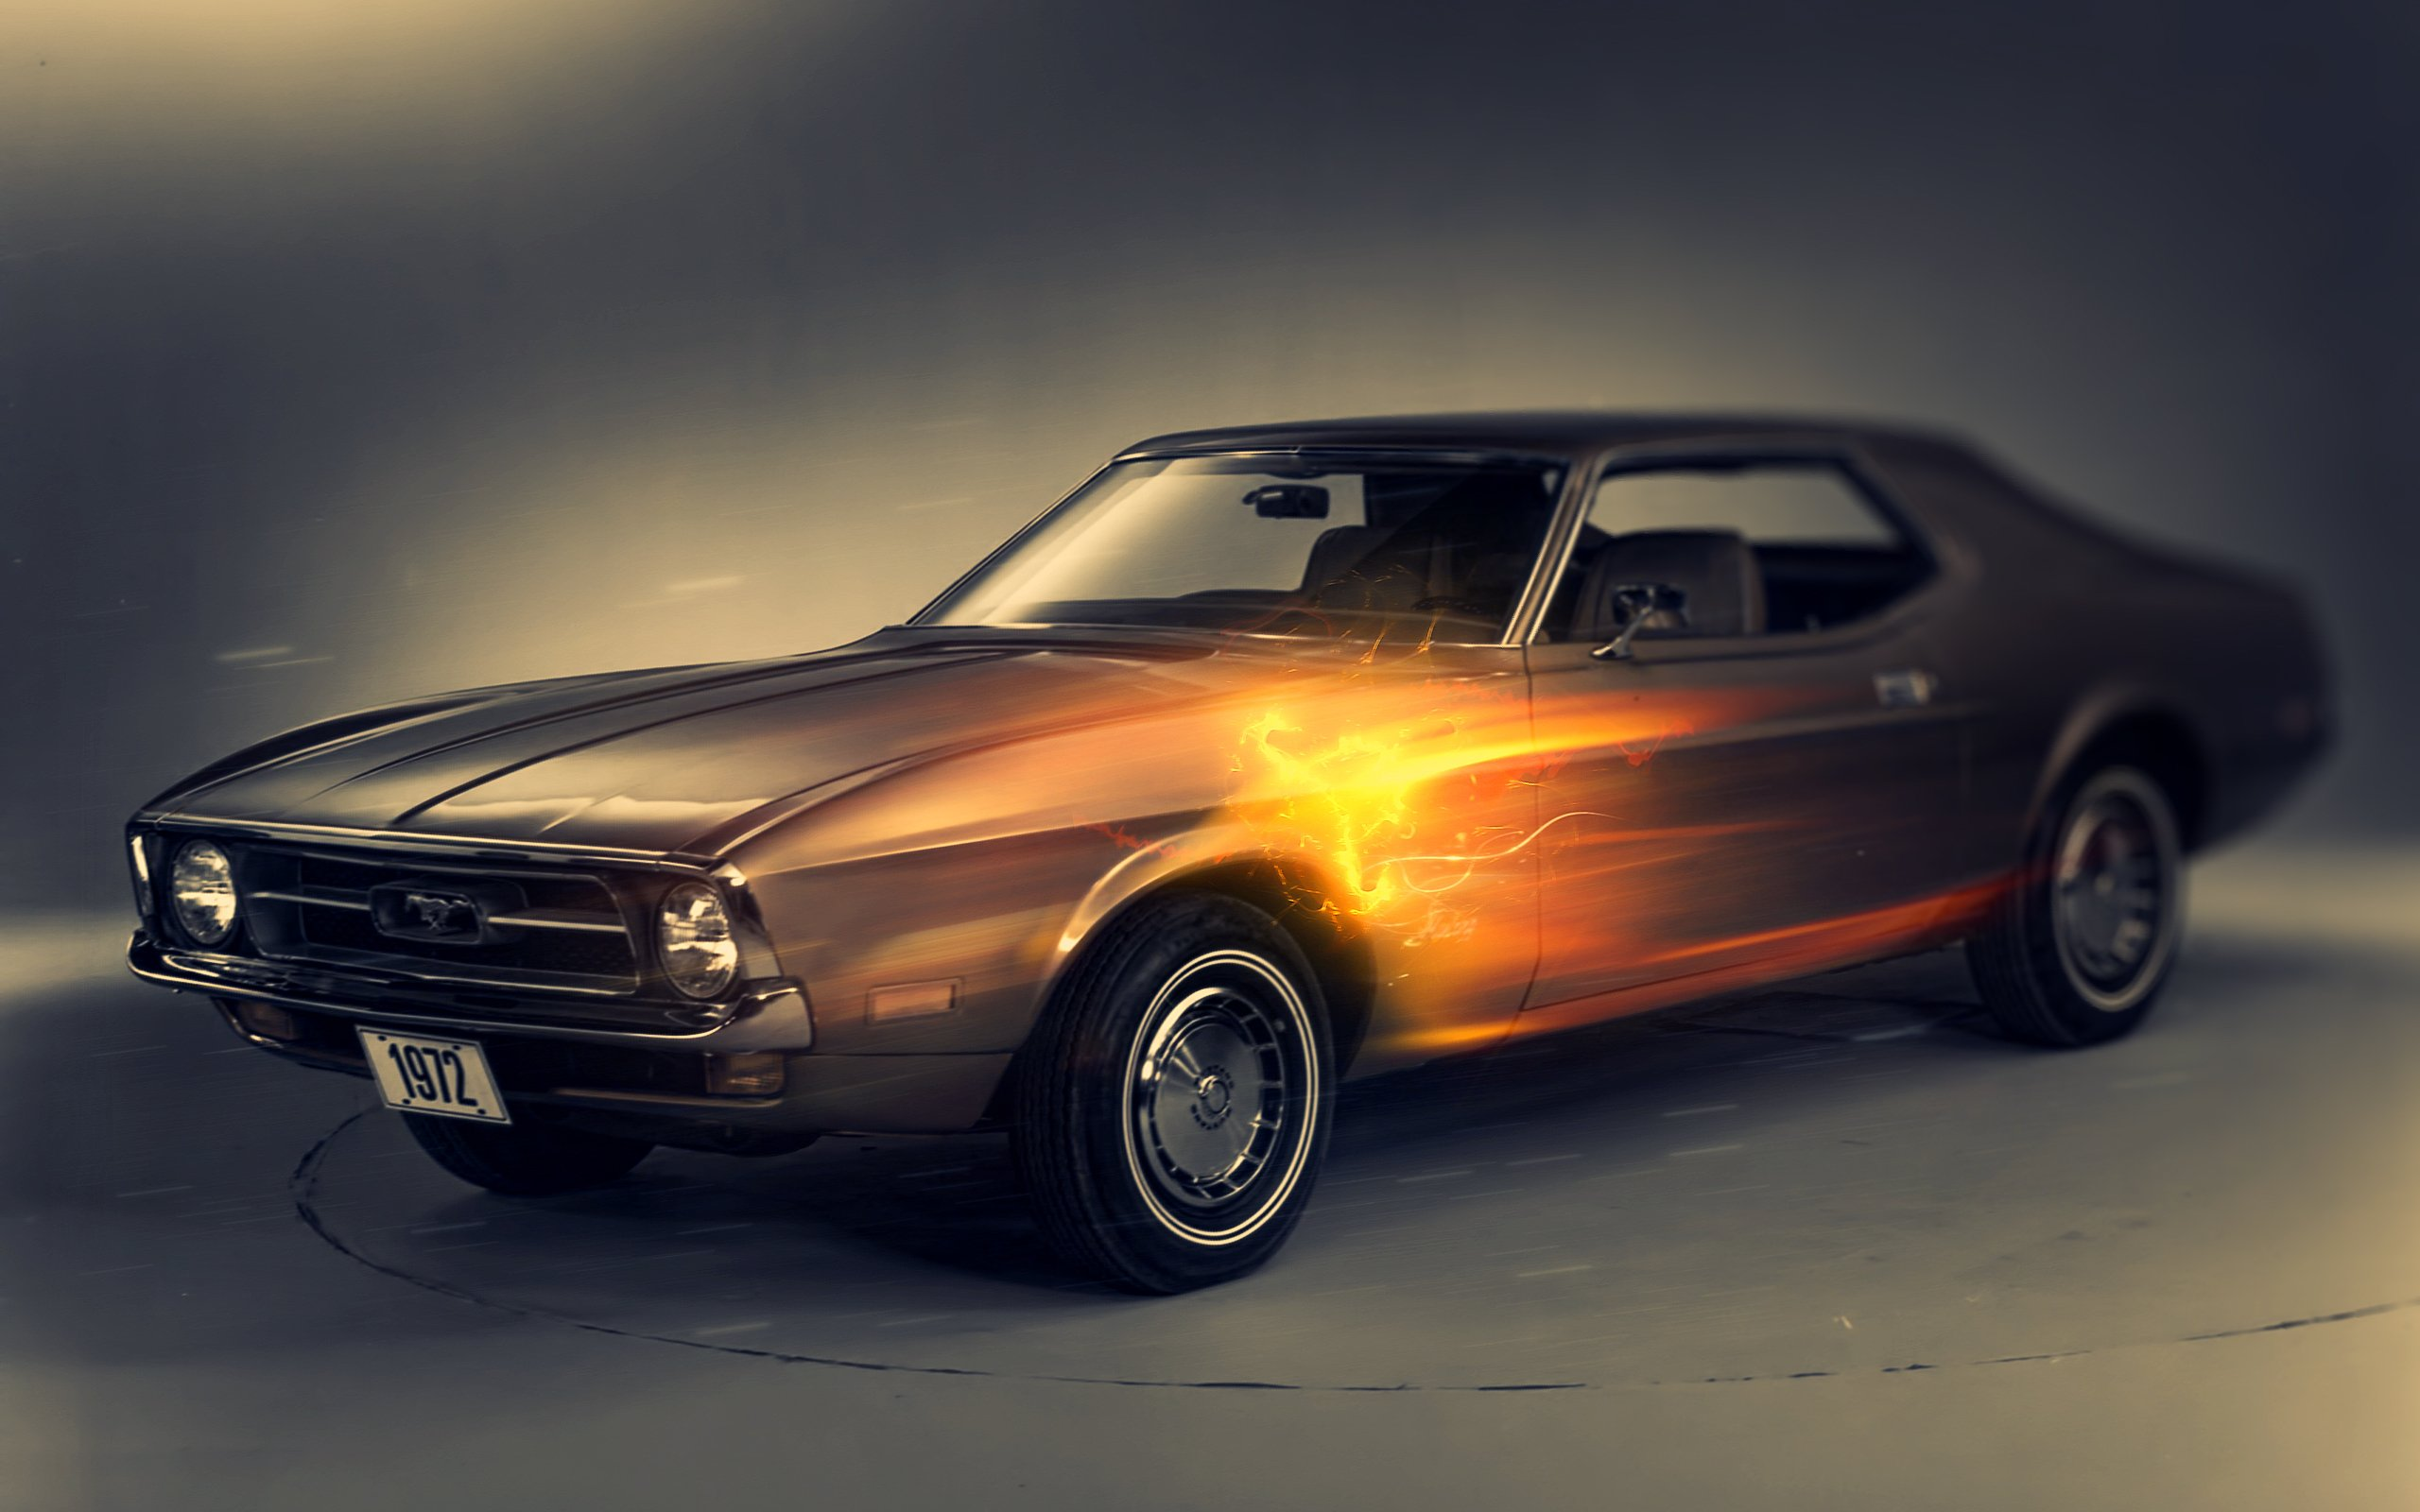 1972 Ford Mustang Wallpapers HD Wallpapers 2560x1600